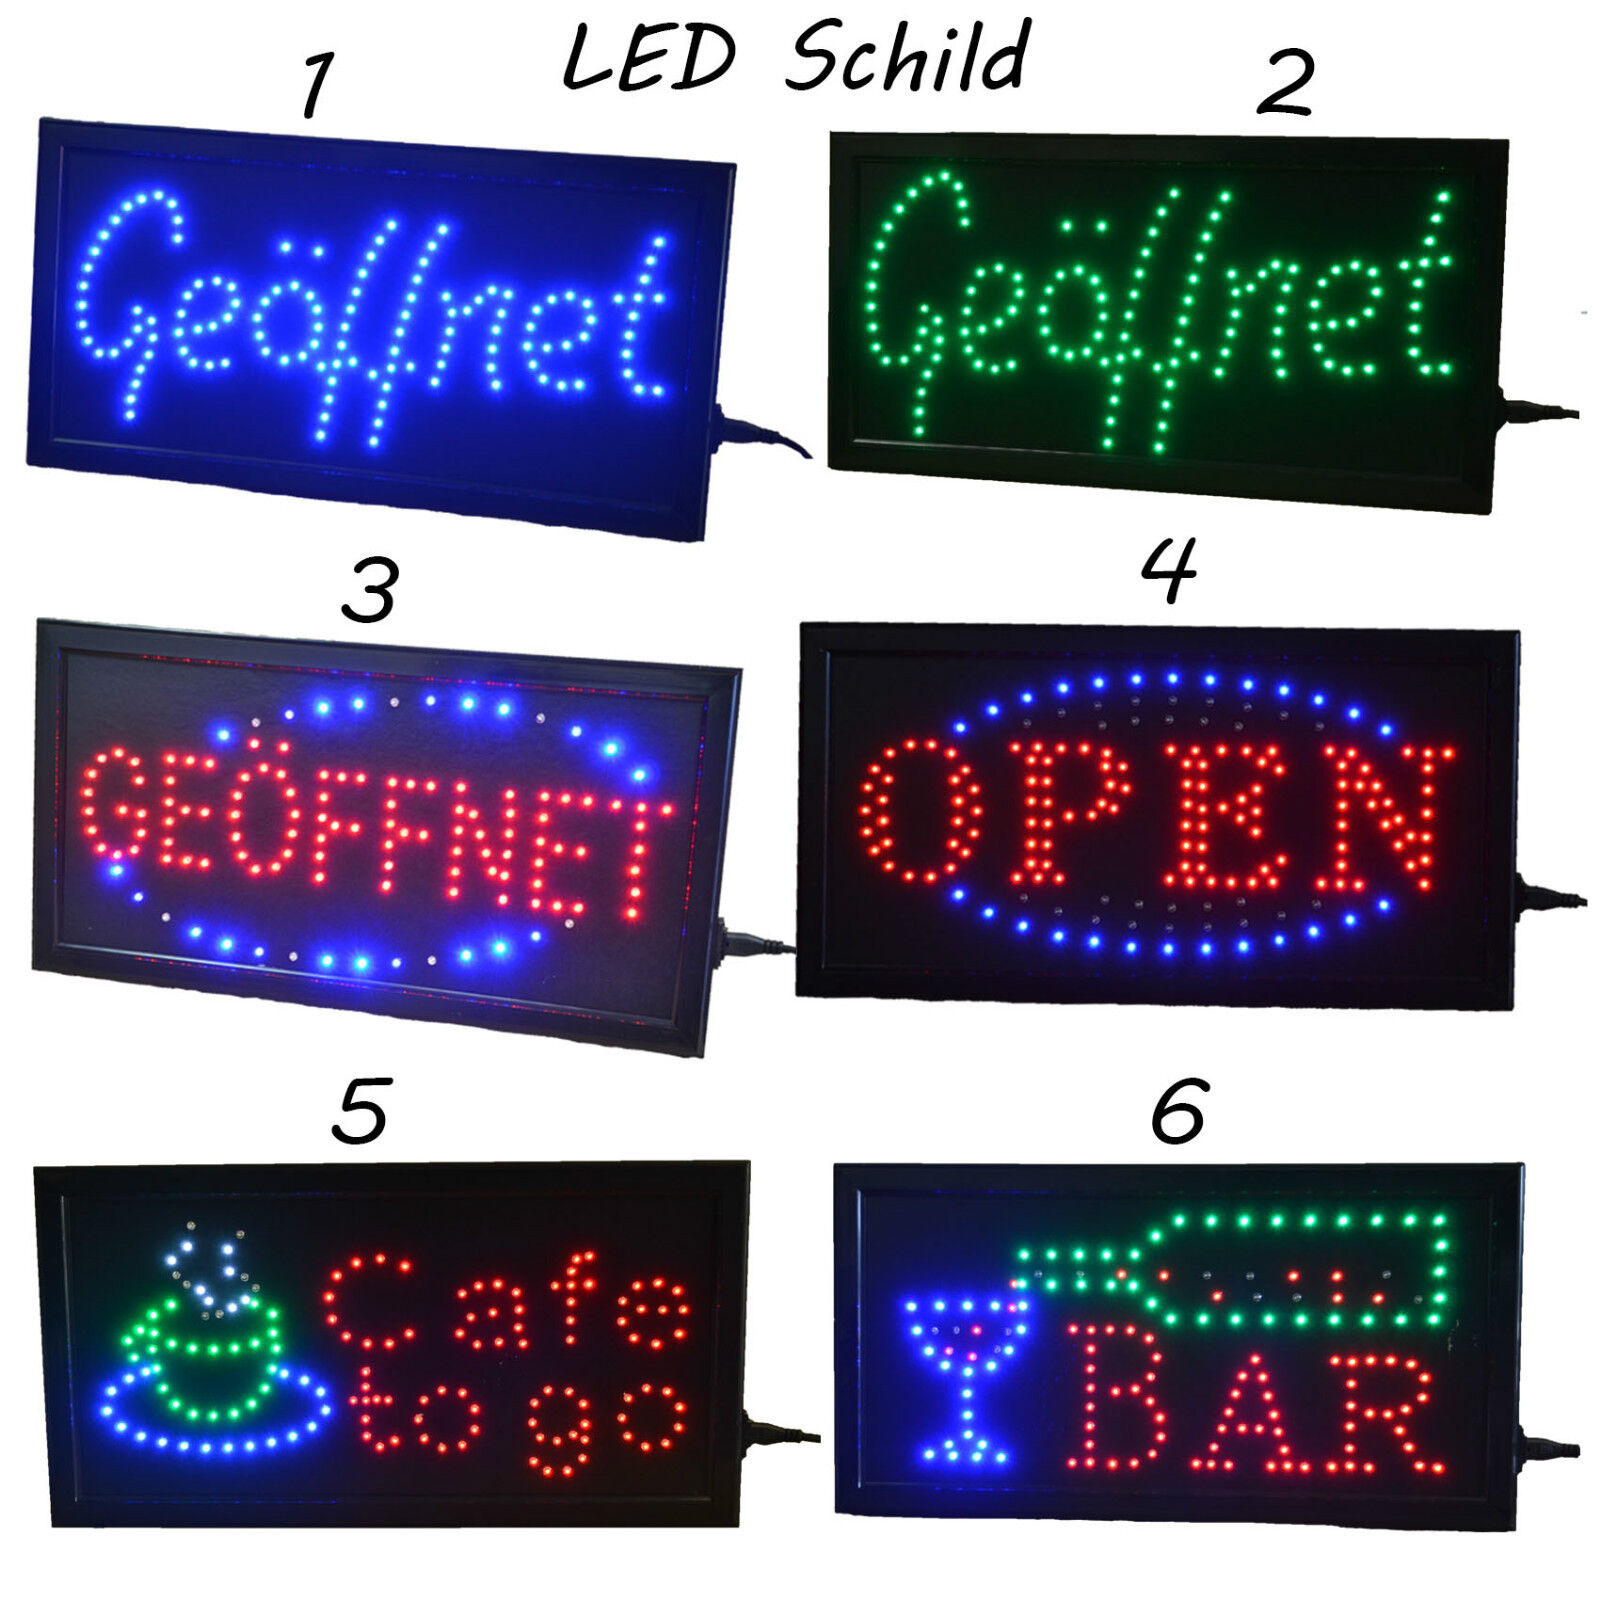 led open ge ffnet schild leuchtschild xxl reklame leuchtreklame werbung display eur 23 95. Black Bedroom Furniture Sets. Home Design Ideas